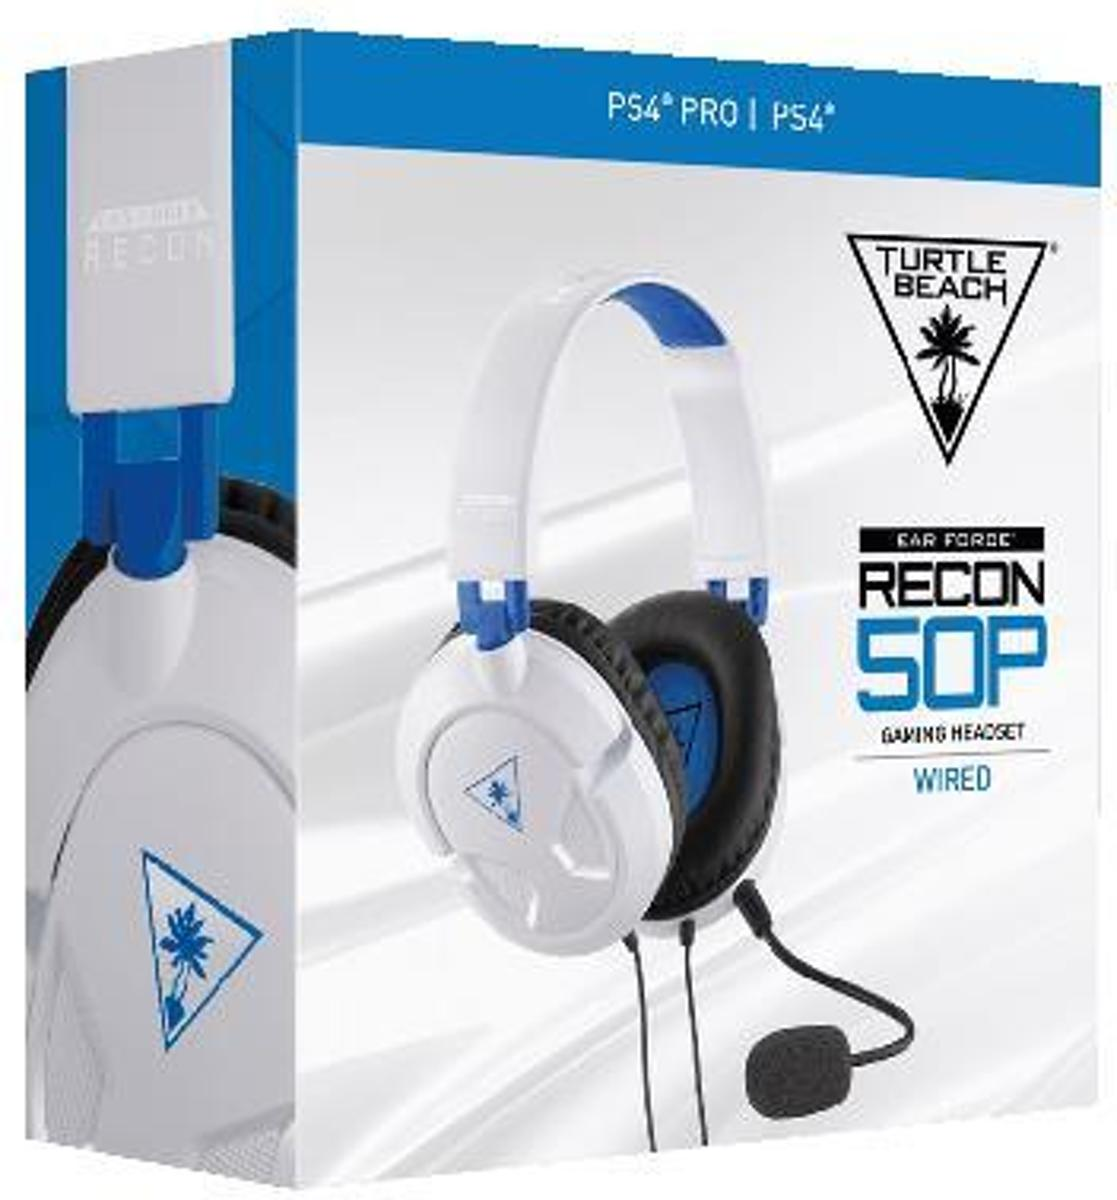 Turtle Beach Ear Force Recon 50P Gaming Headset (Wit) PS4